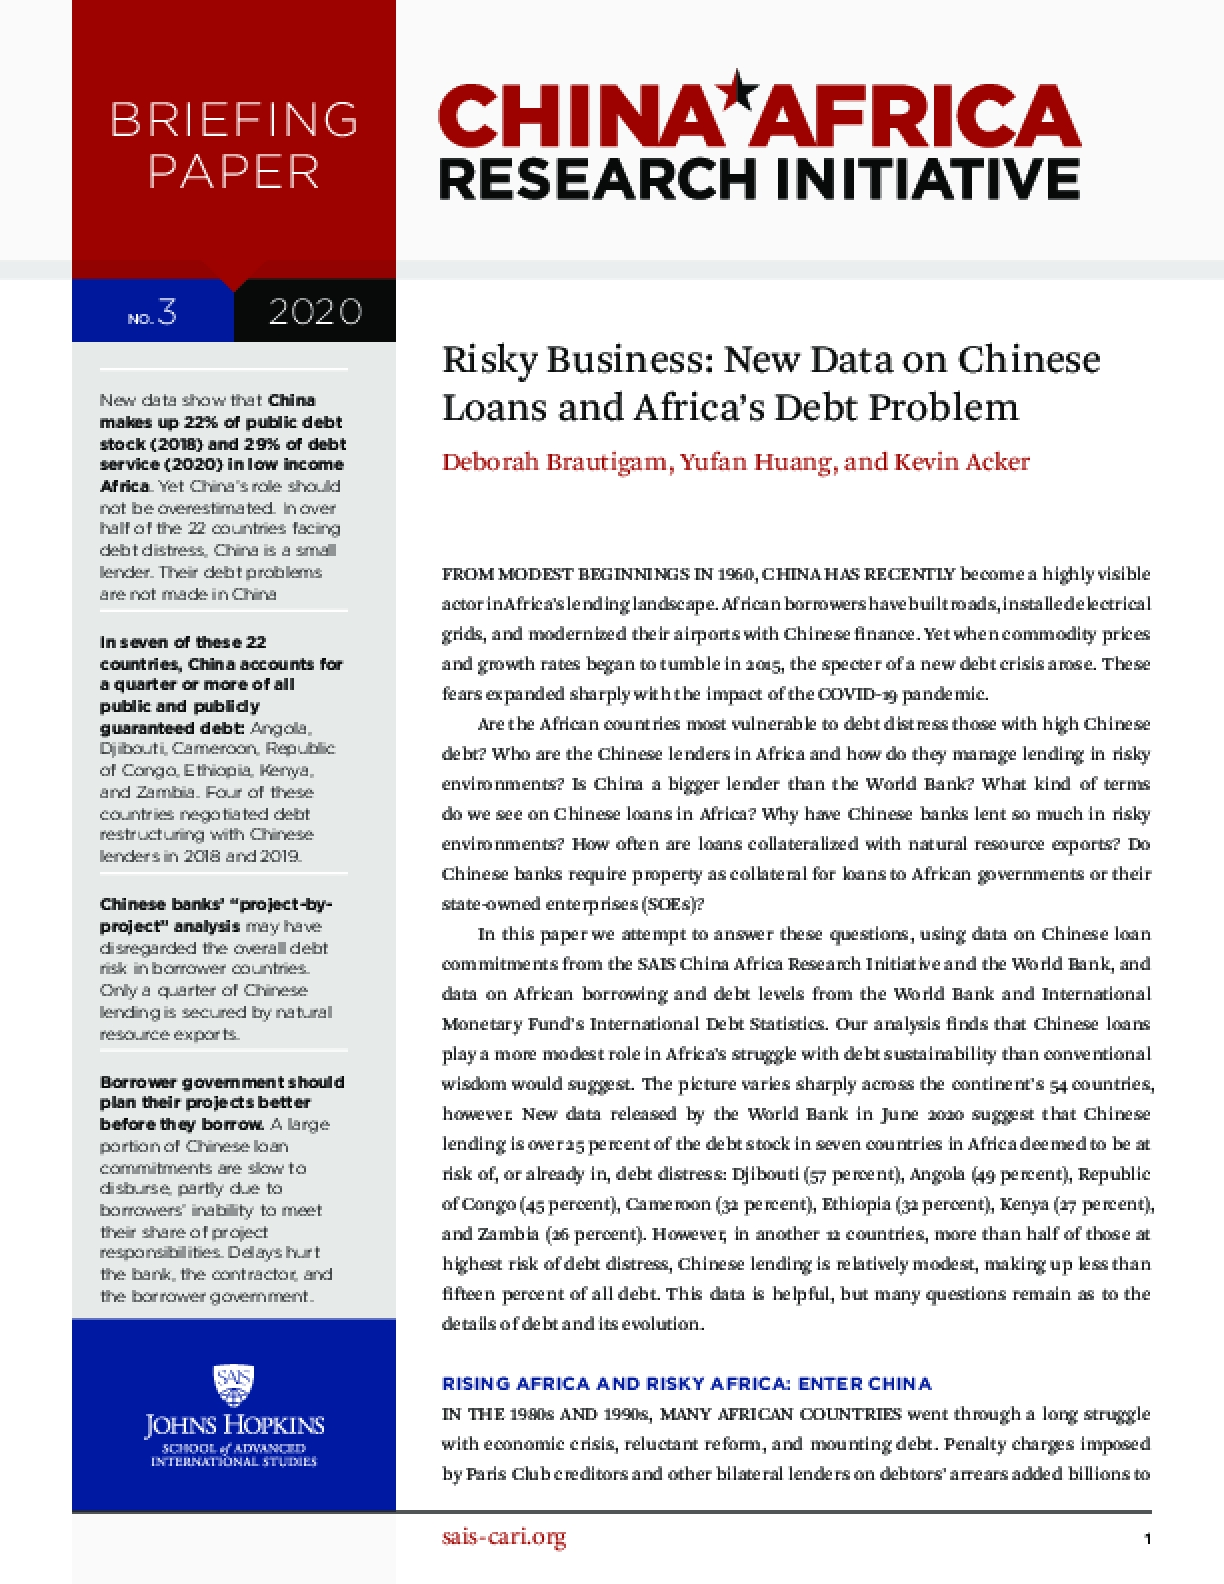 Risky Business: New Data on Chinese Loans and Africa's Debt Problem